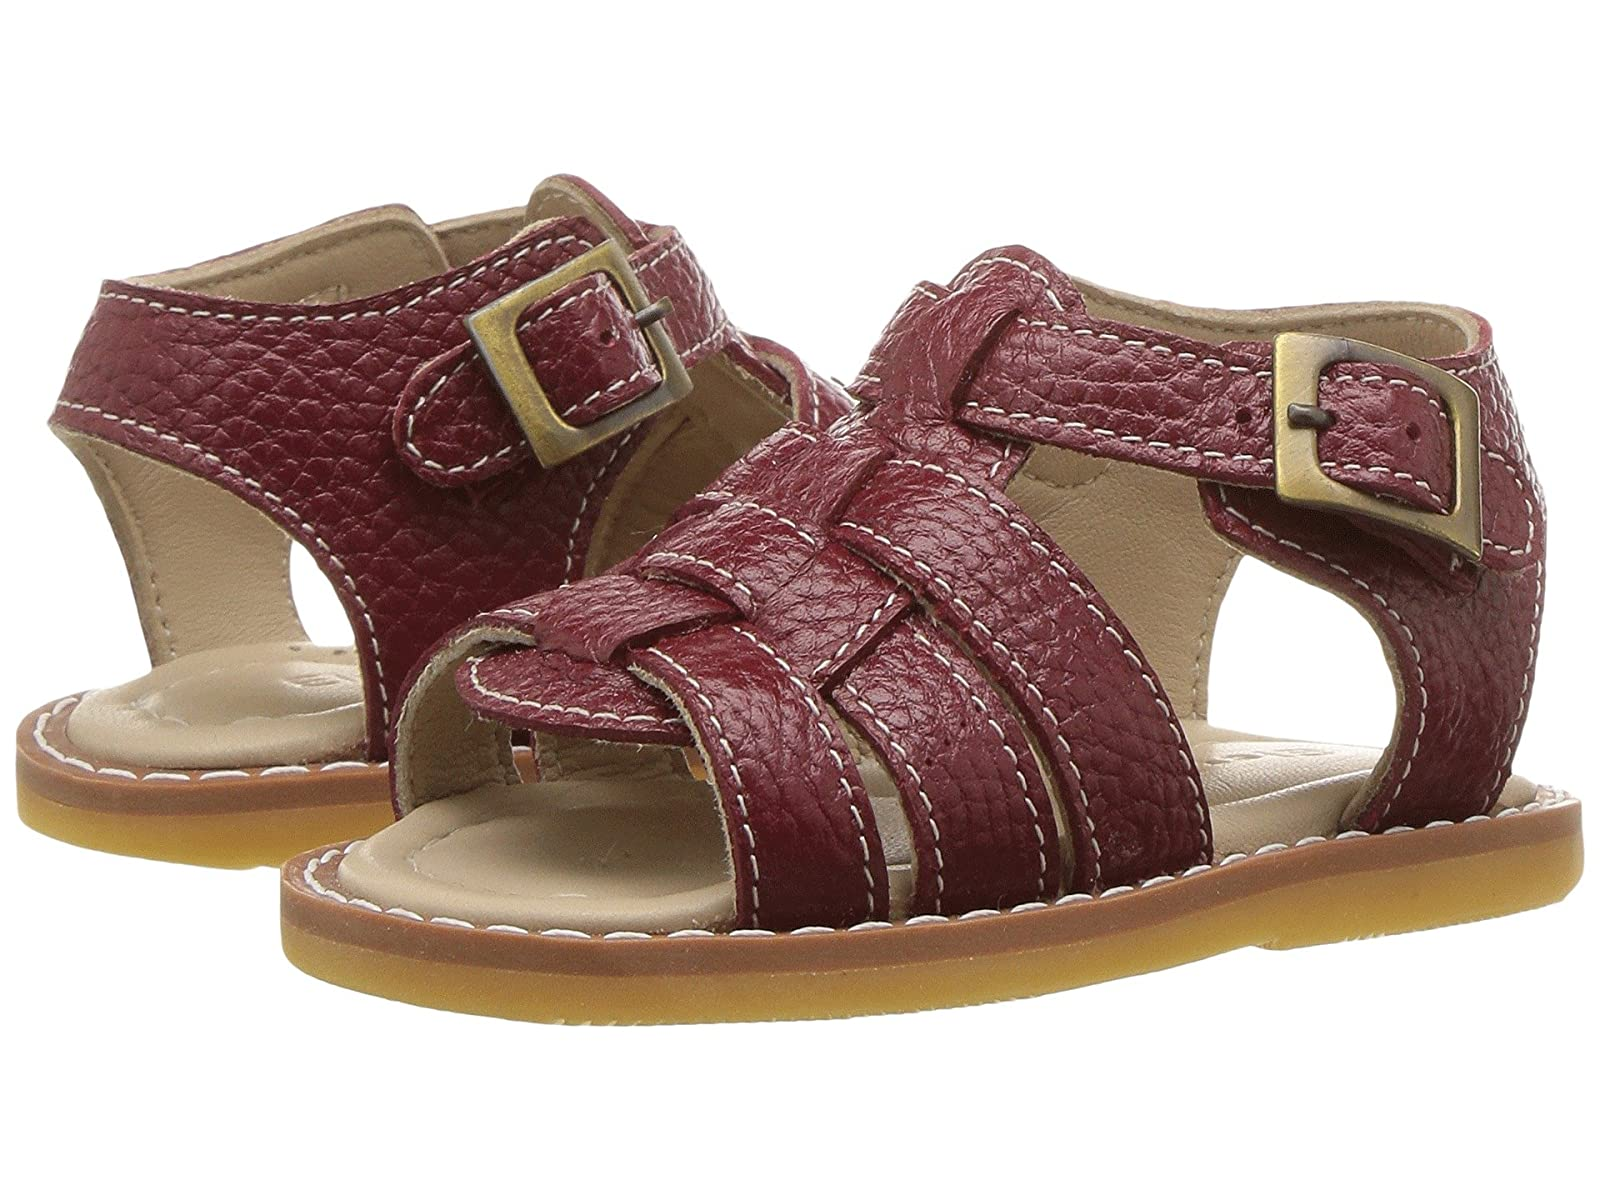 Elephantito Fisherman Sandal (Infant/Toddler)Atmospheric grades have affordable shoes